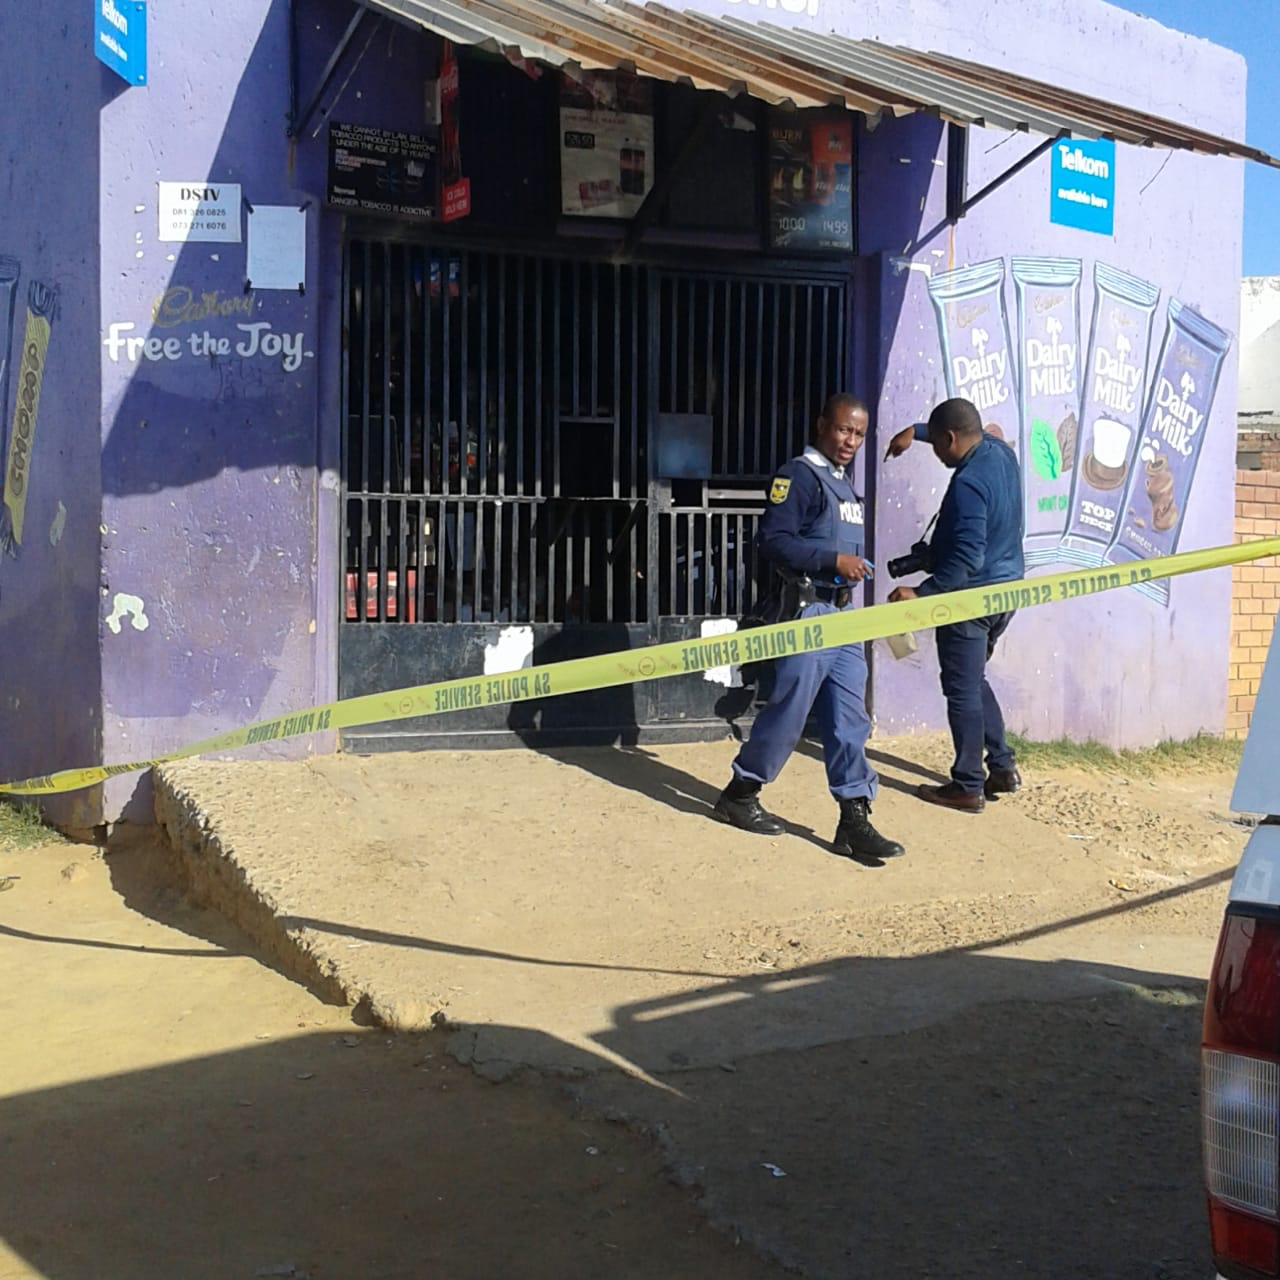 Colorado Shooting Dead: 28-year-old Shop Owner Shot And Killed In Rabie Ridge